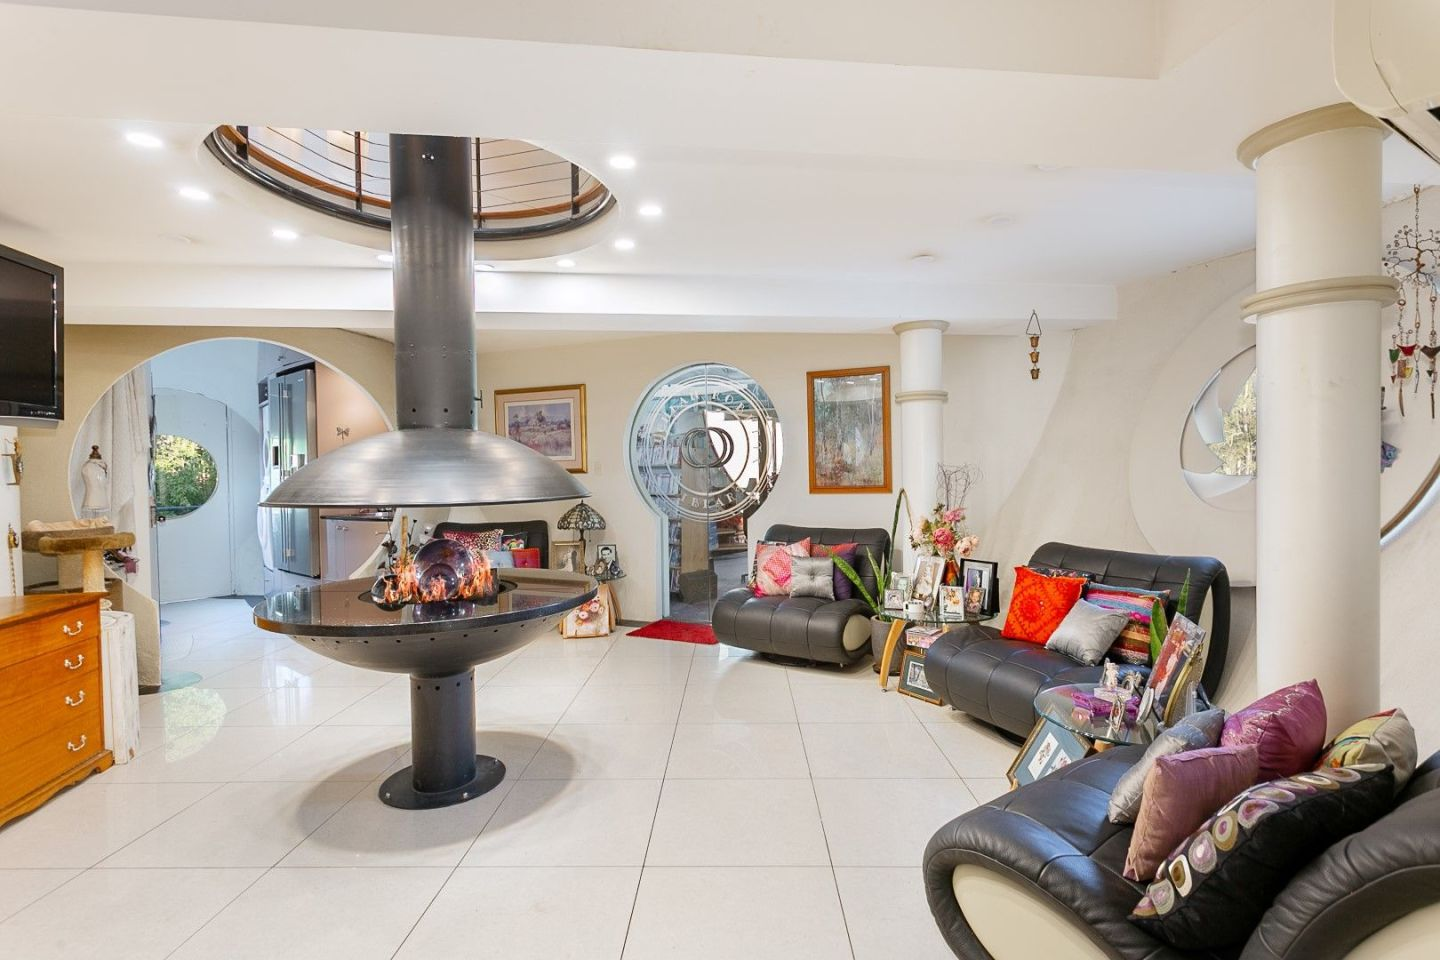 Double-storey heater is another custom build